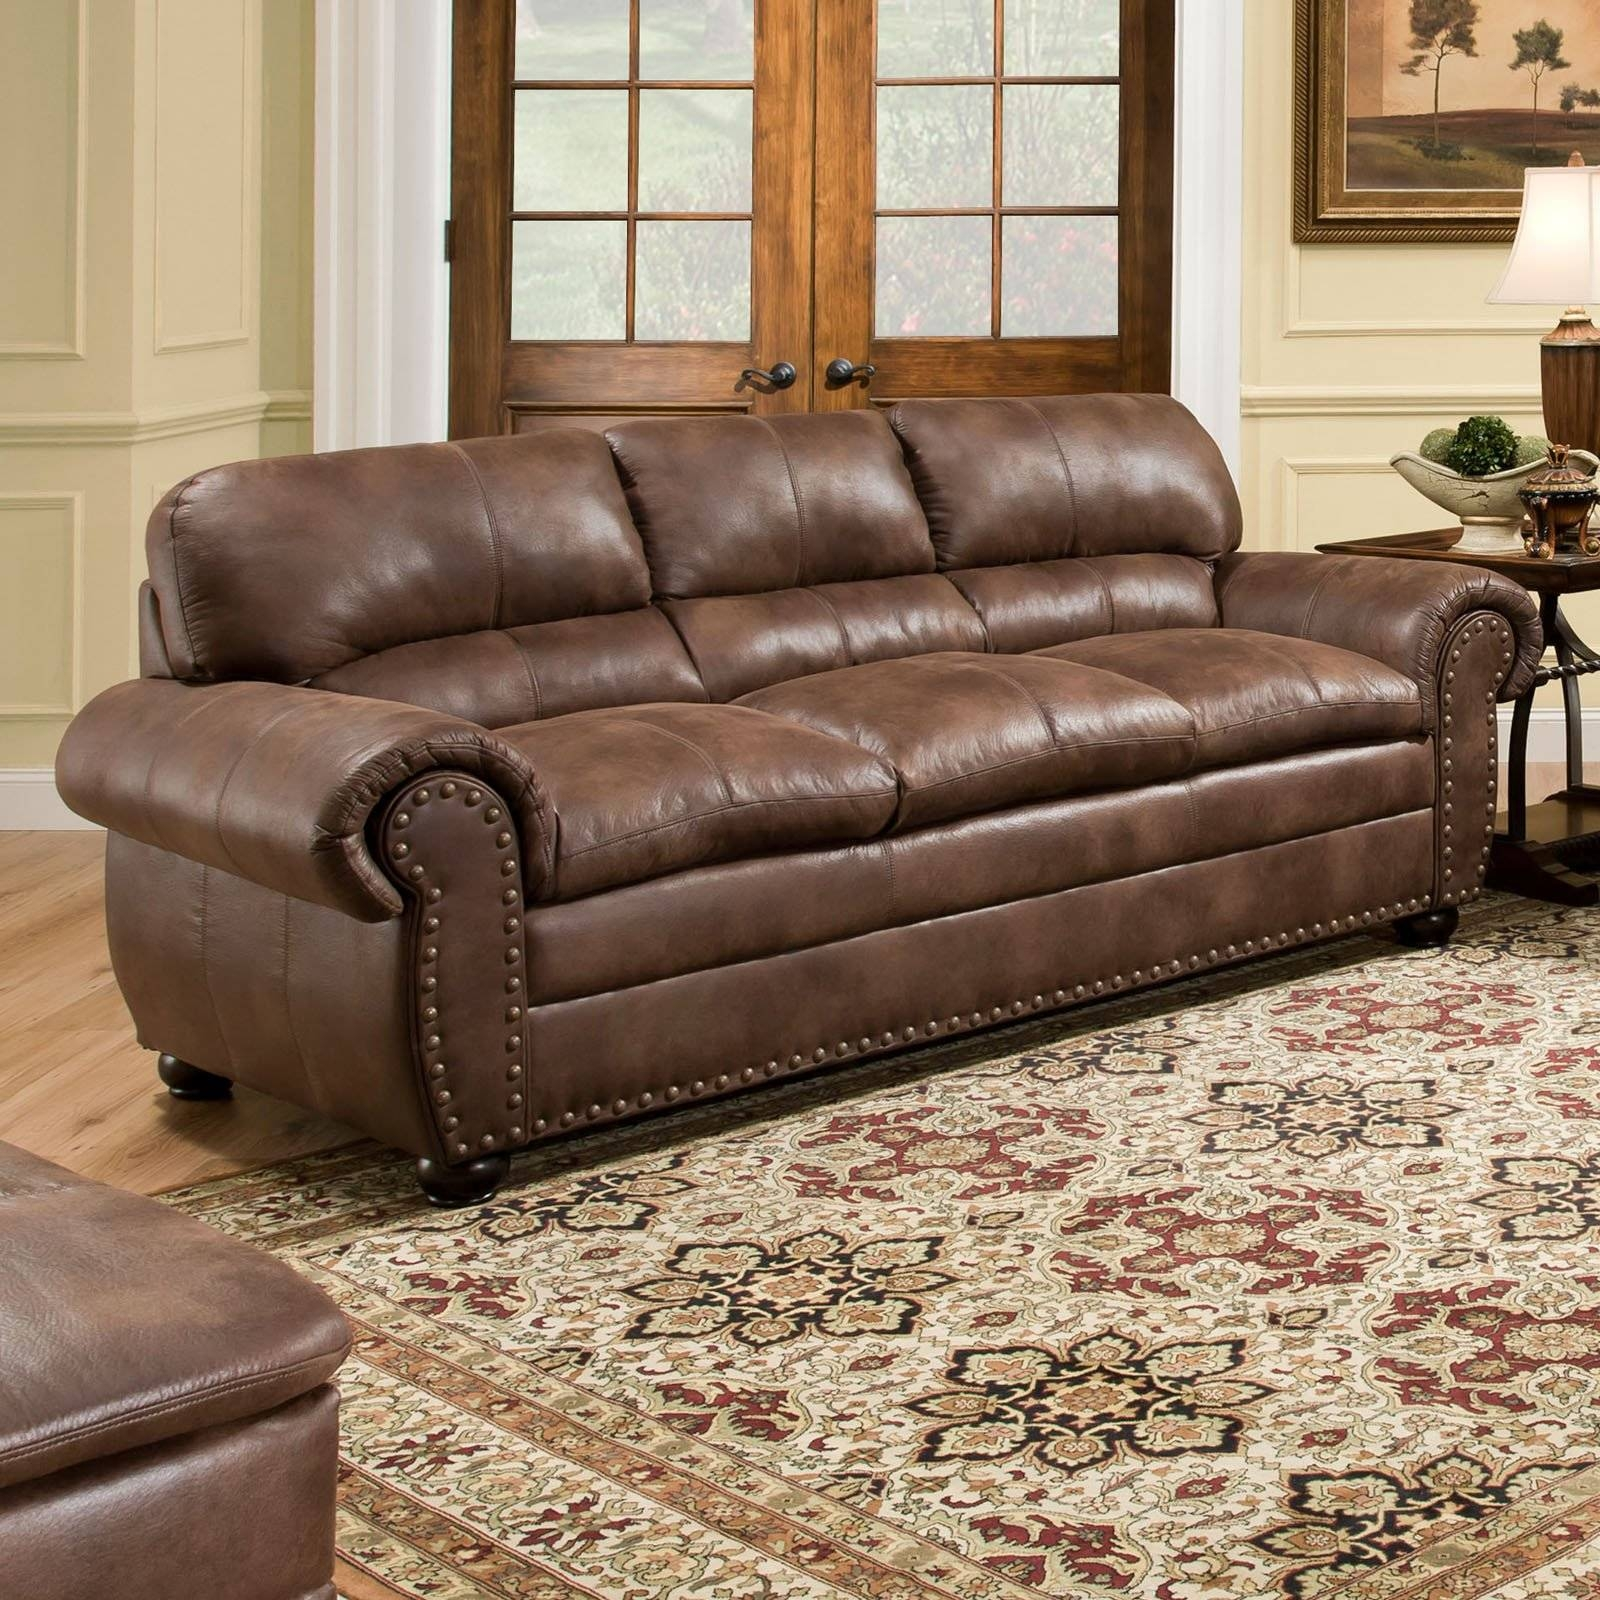 Furniture: Overstuffed Sofa | Simmons Couch | Gray Sectional Sofa For Simmons Leather Sofas And Loveseats (View 6 of 15)